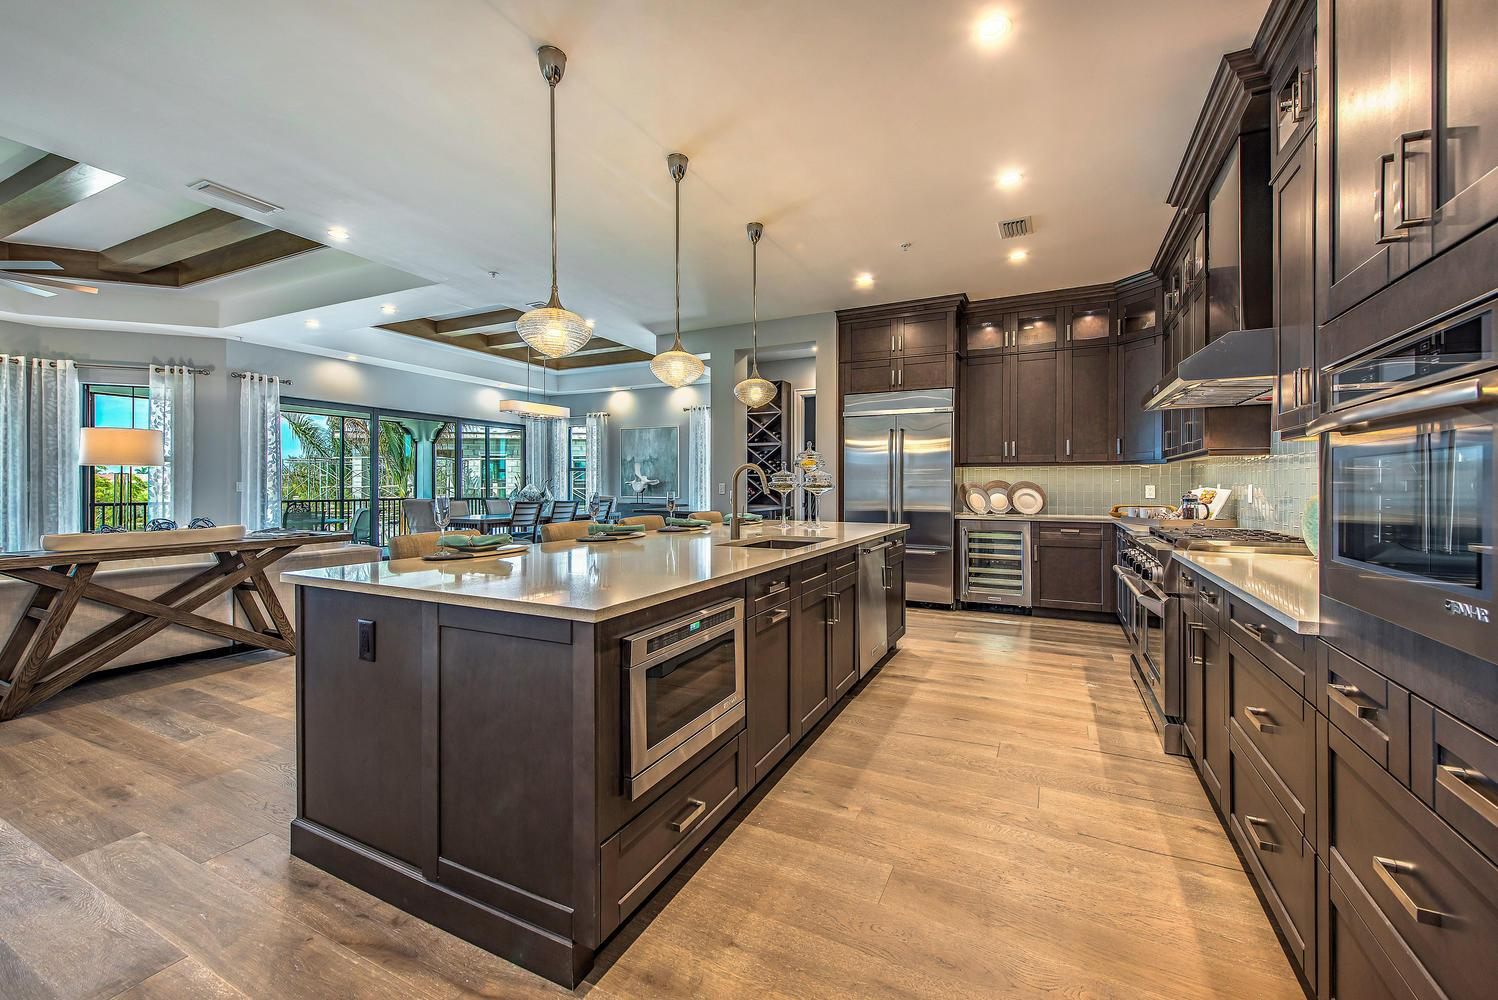 Single Family for Sale at The River Club - Wembley 681 Trinity Place Suwanee, Georgia 30024 United States